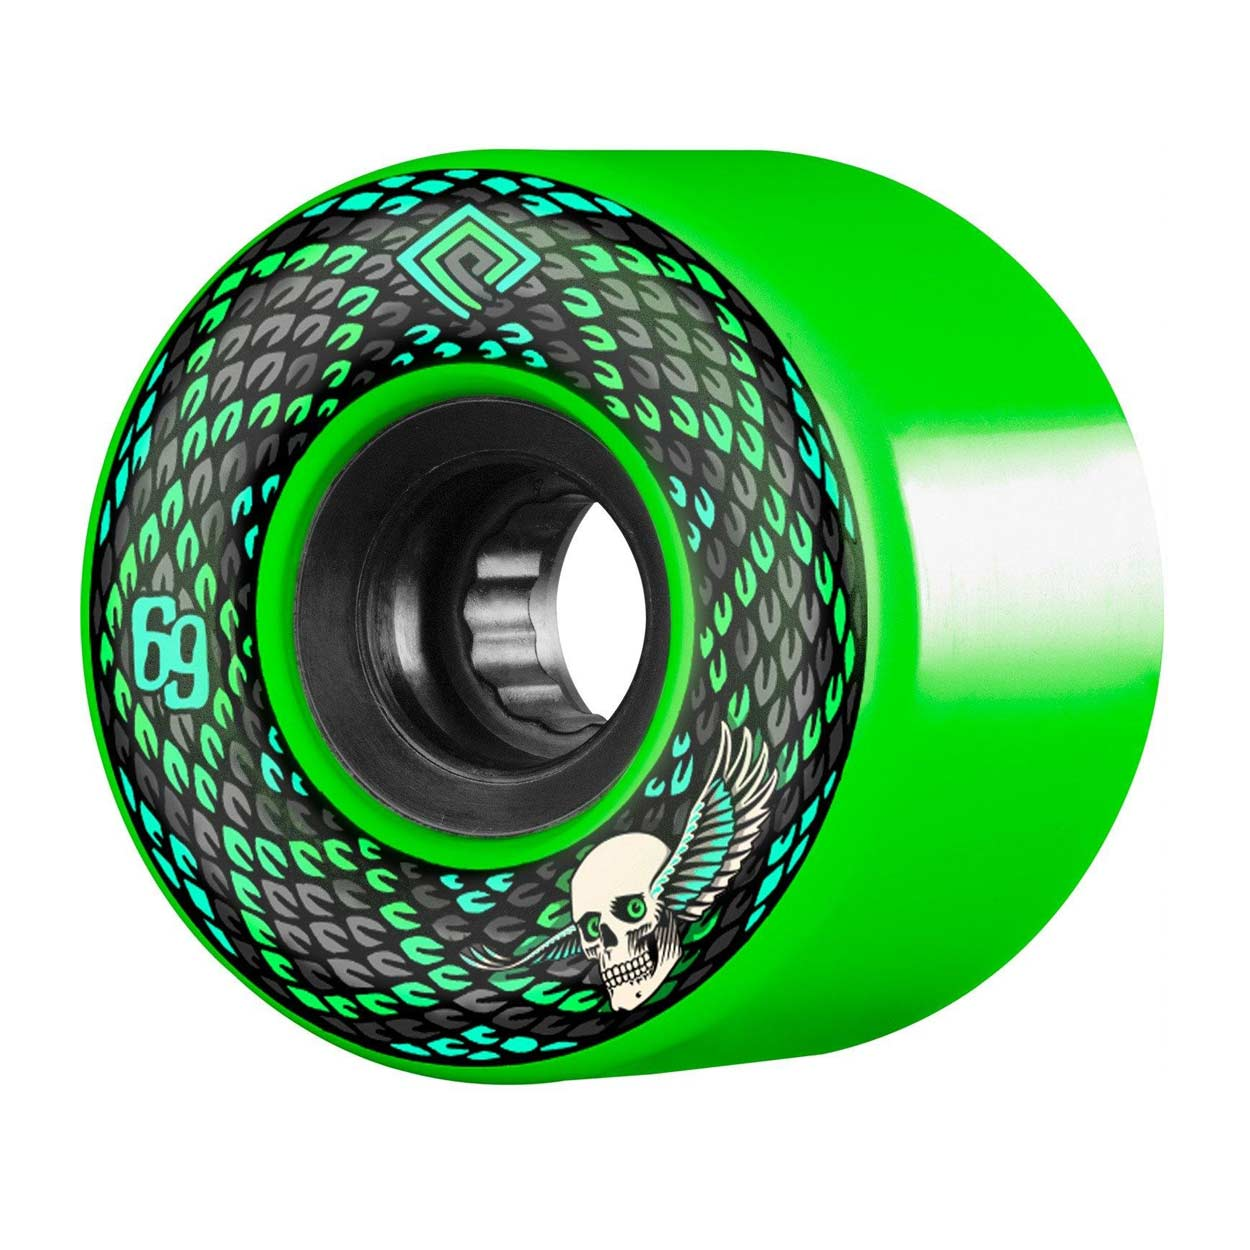 Powell Peralta Snakes 69mm 75a Wheels Green Calstreets Boarderlabs